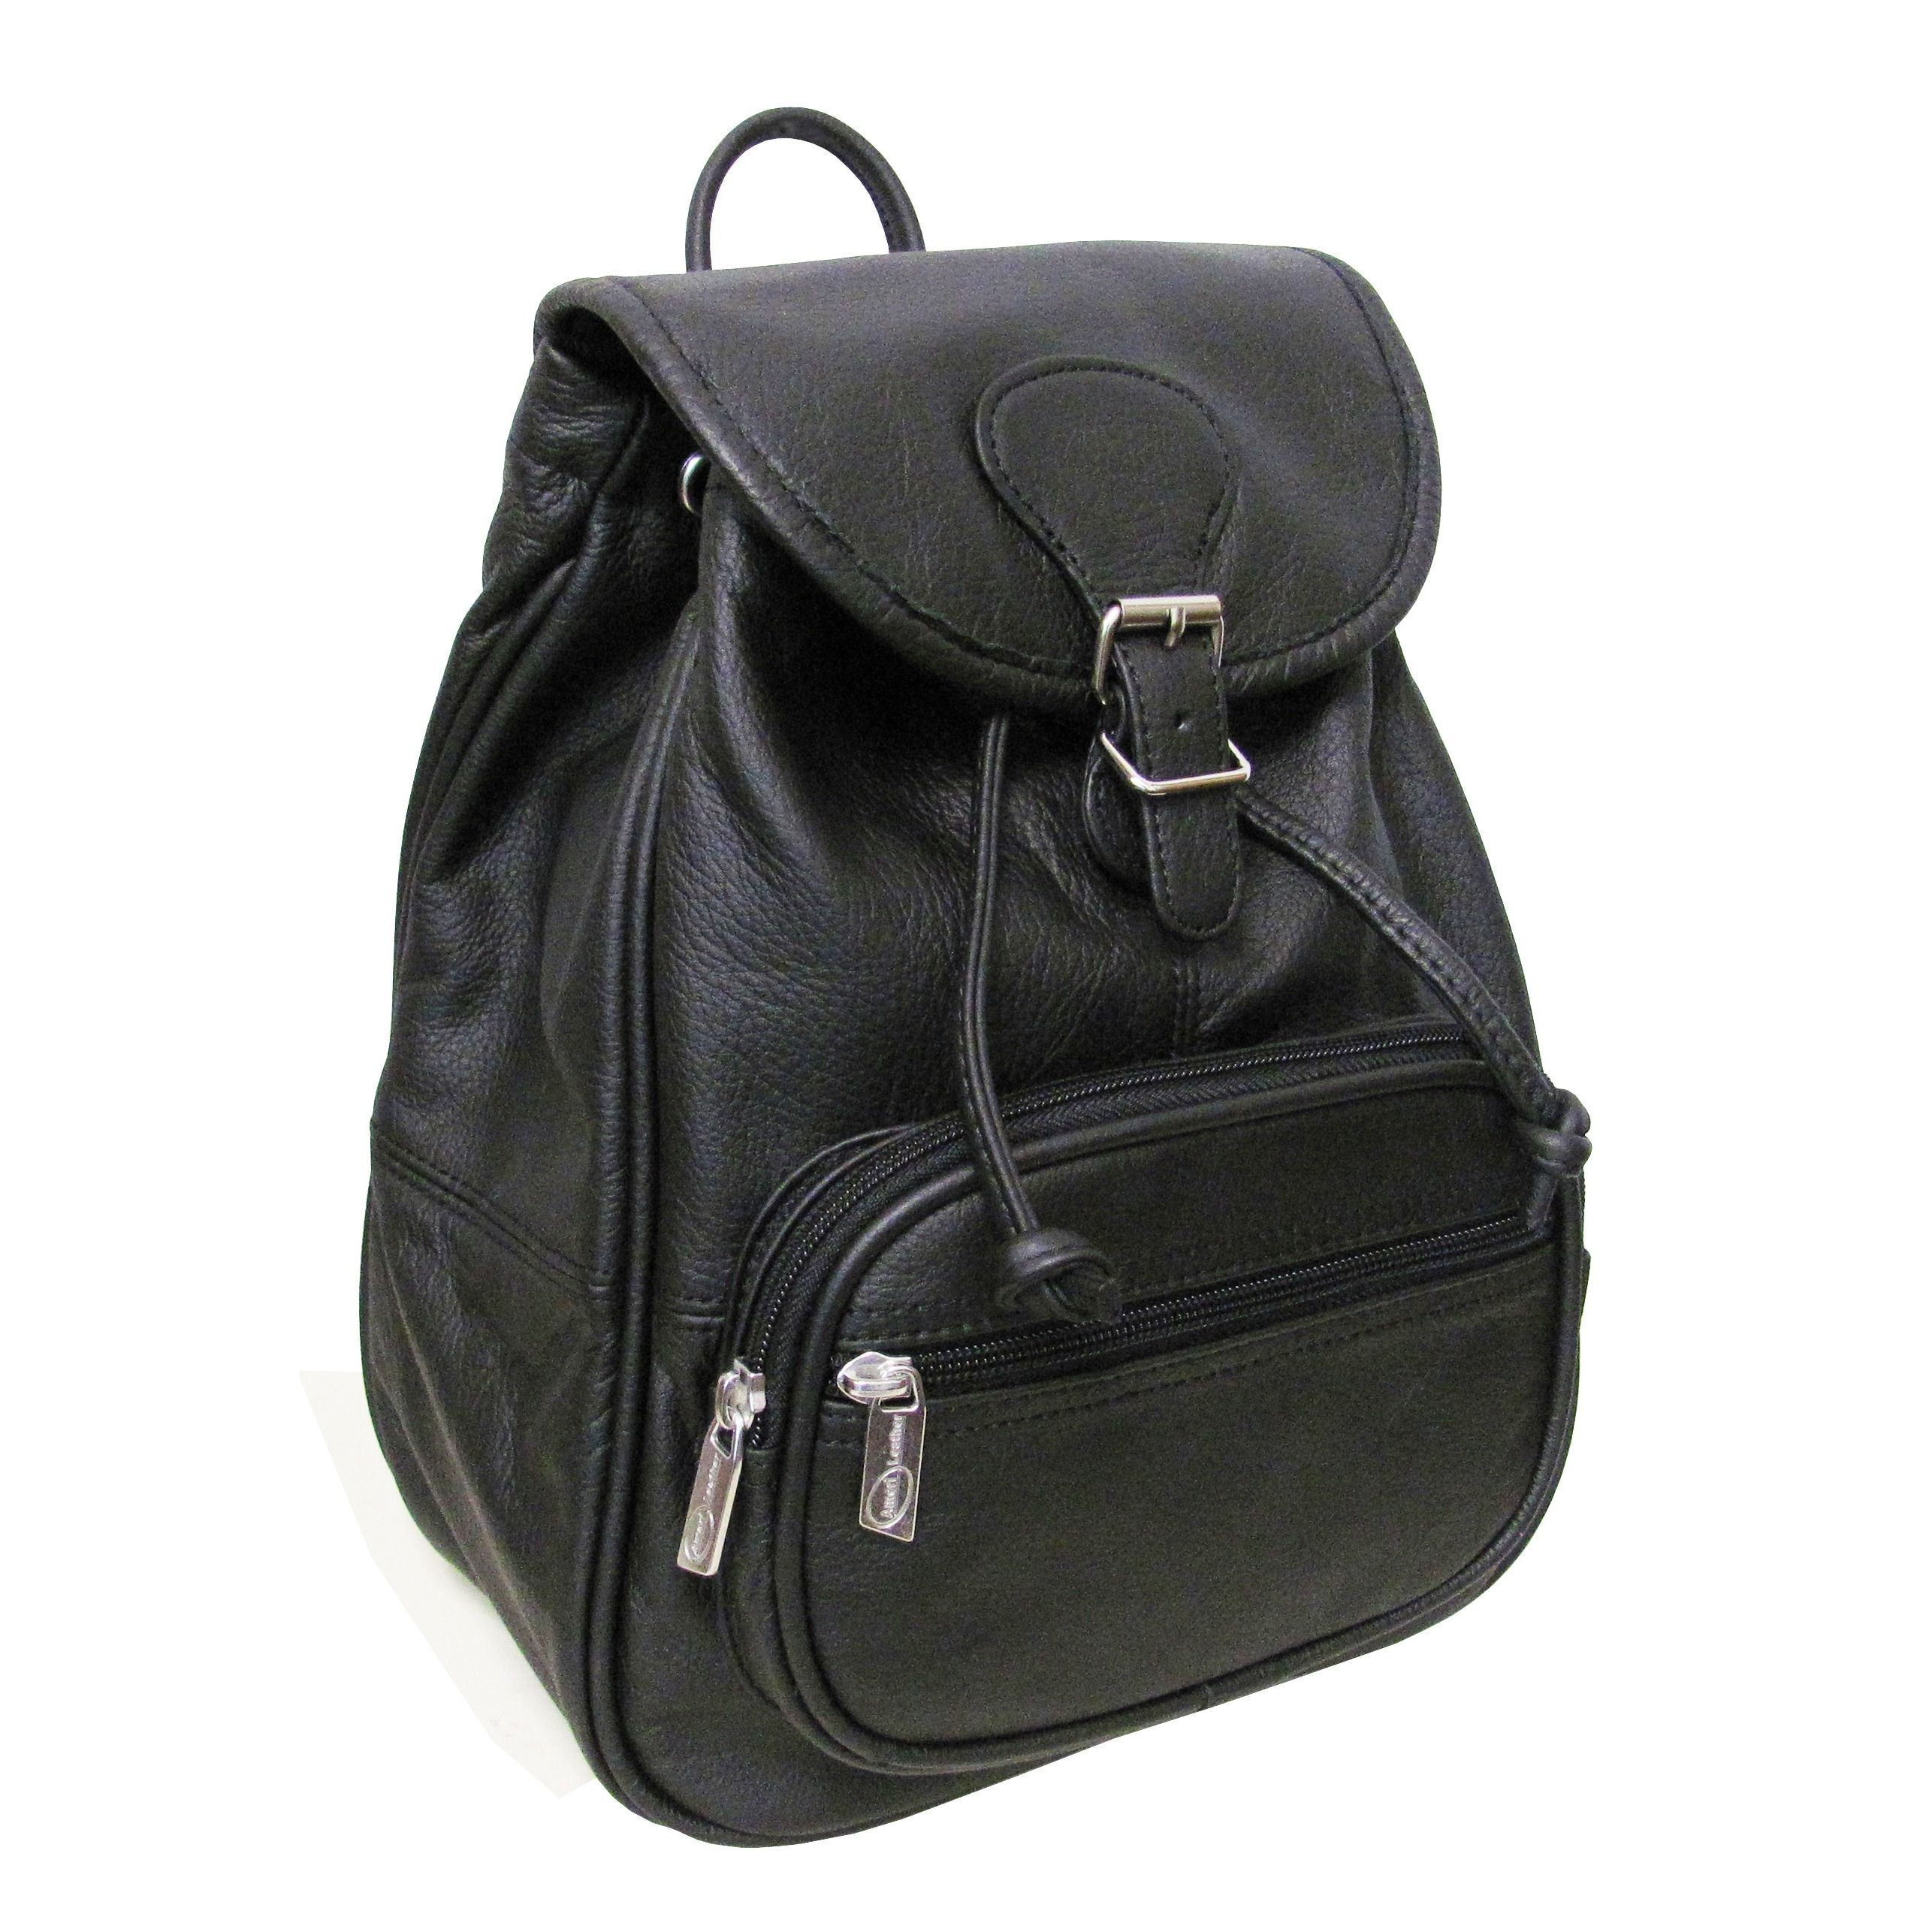 Buy the AmeriLeather Ladies  Leather Backpack at eBags - A simple and  stylish backpack offers storage for your essential items and comfort for  all day use. dbdeea156f9c0